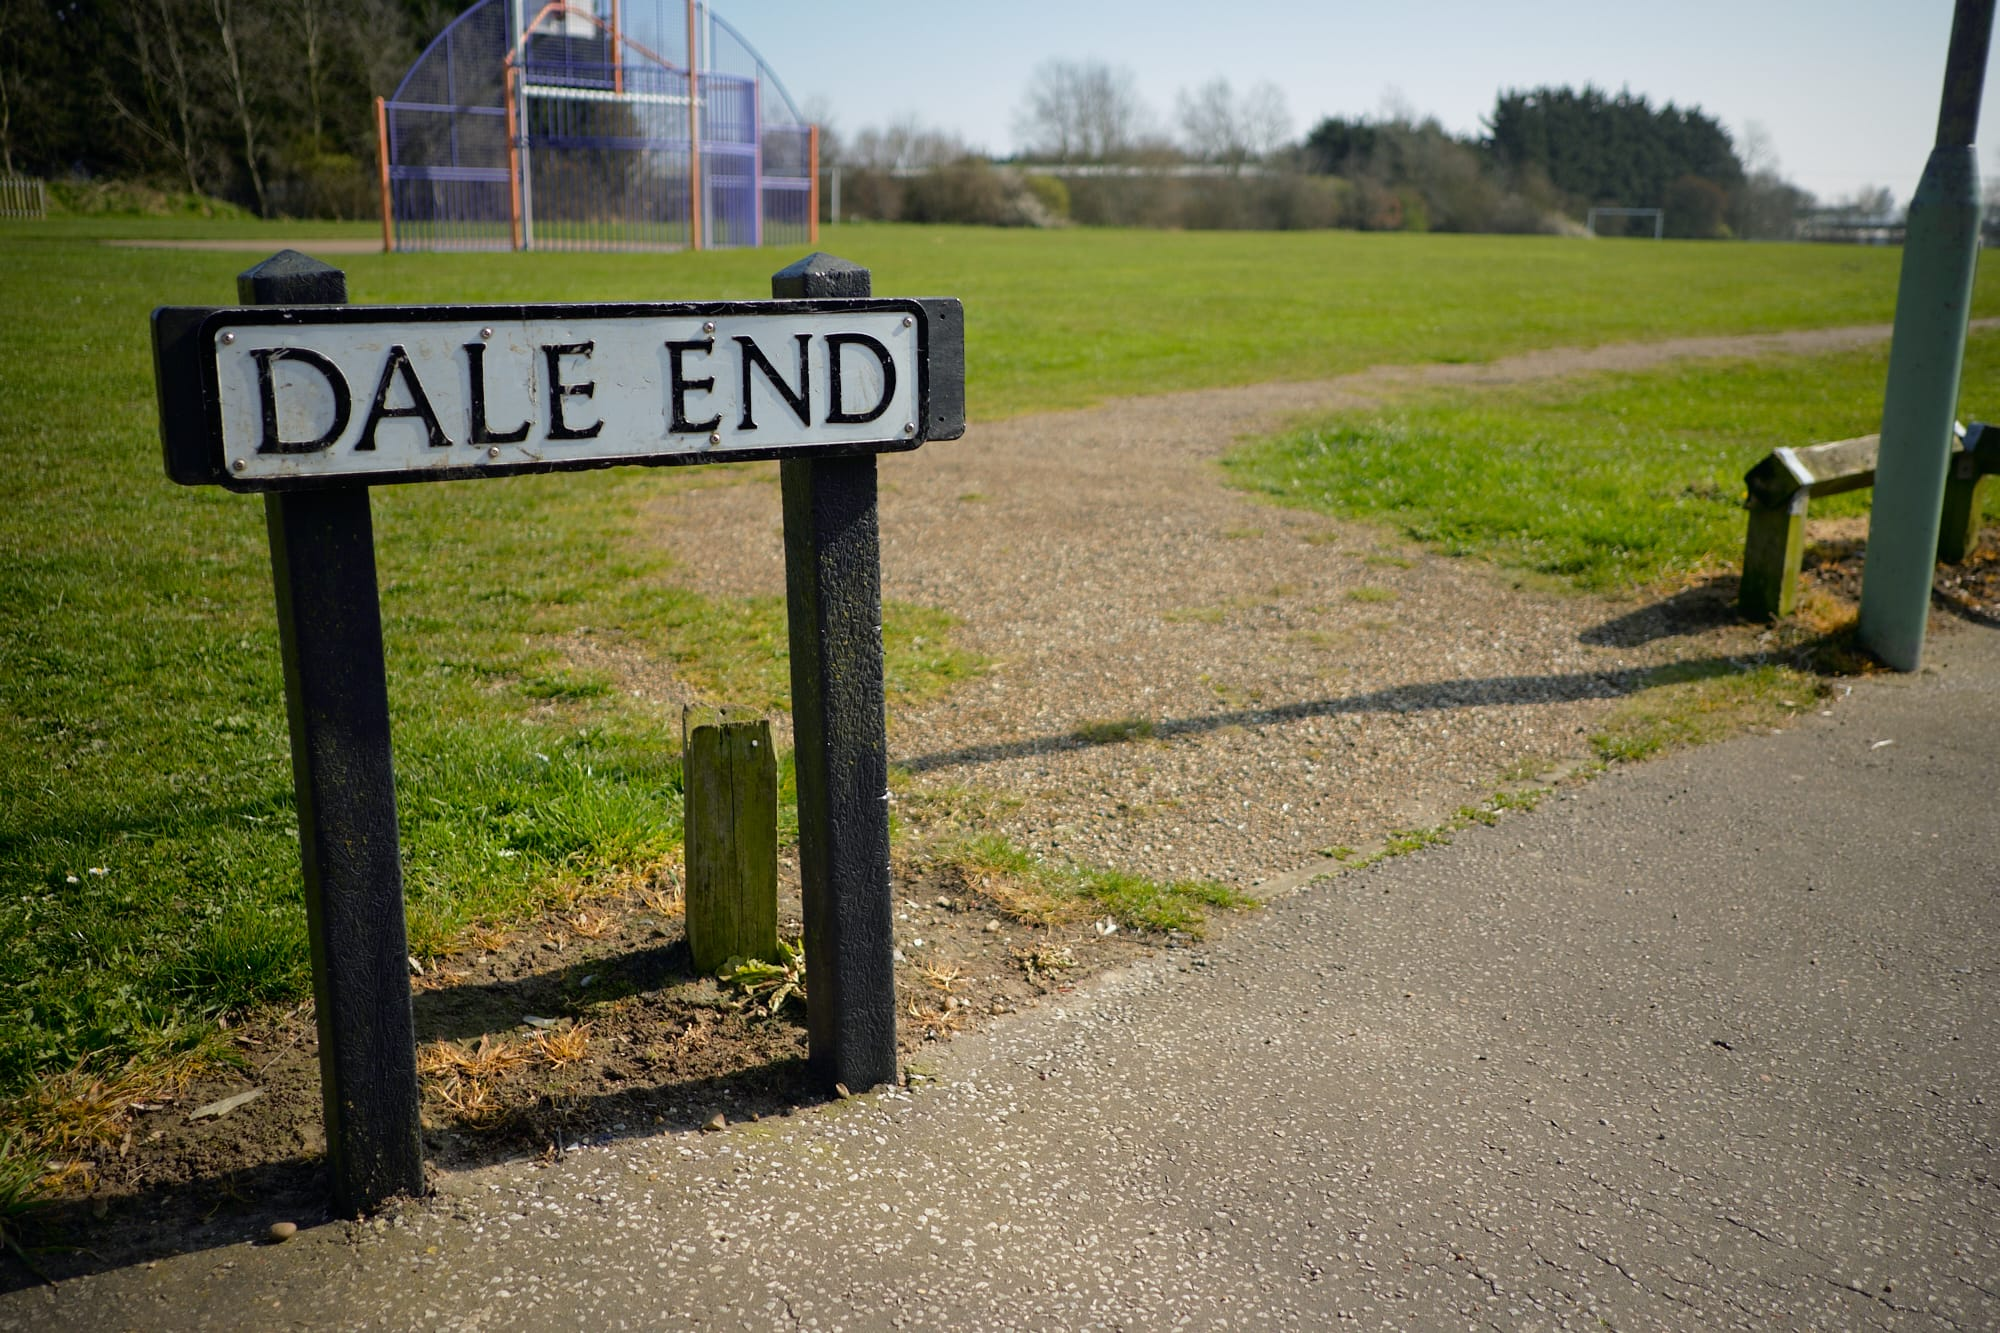 Dale End road sign